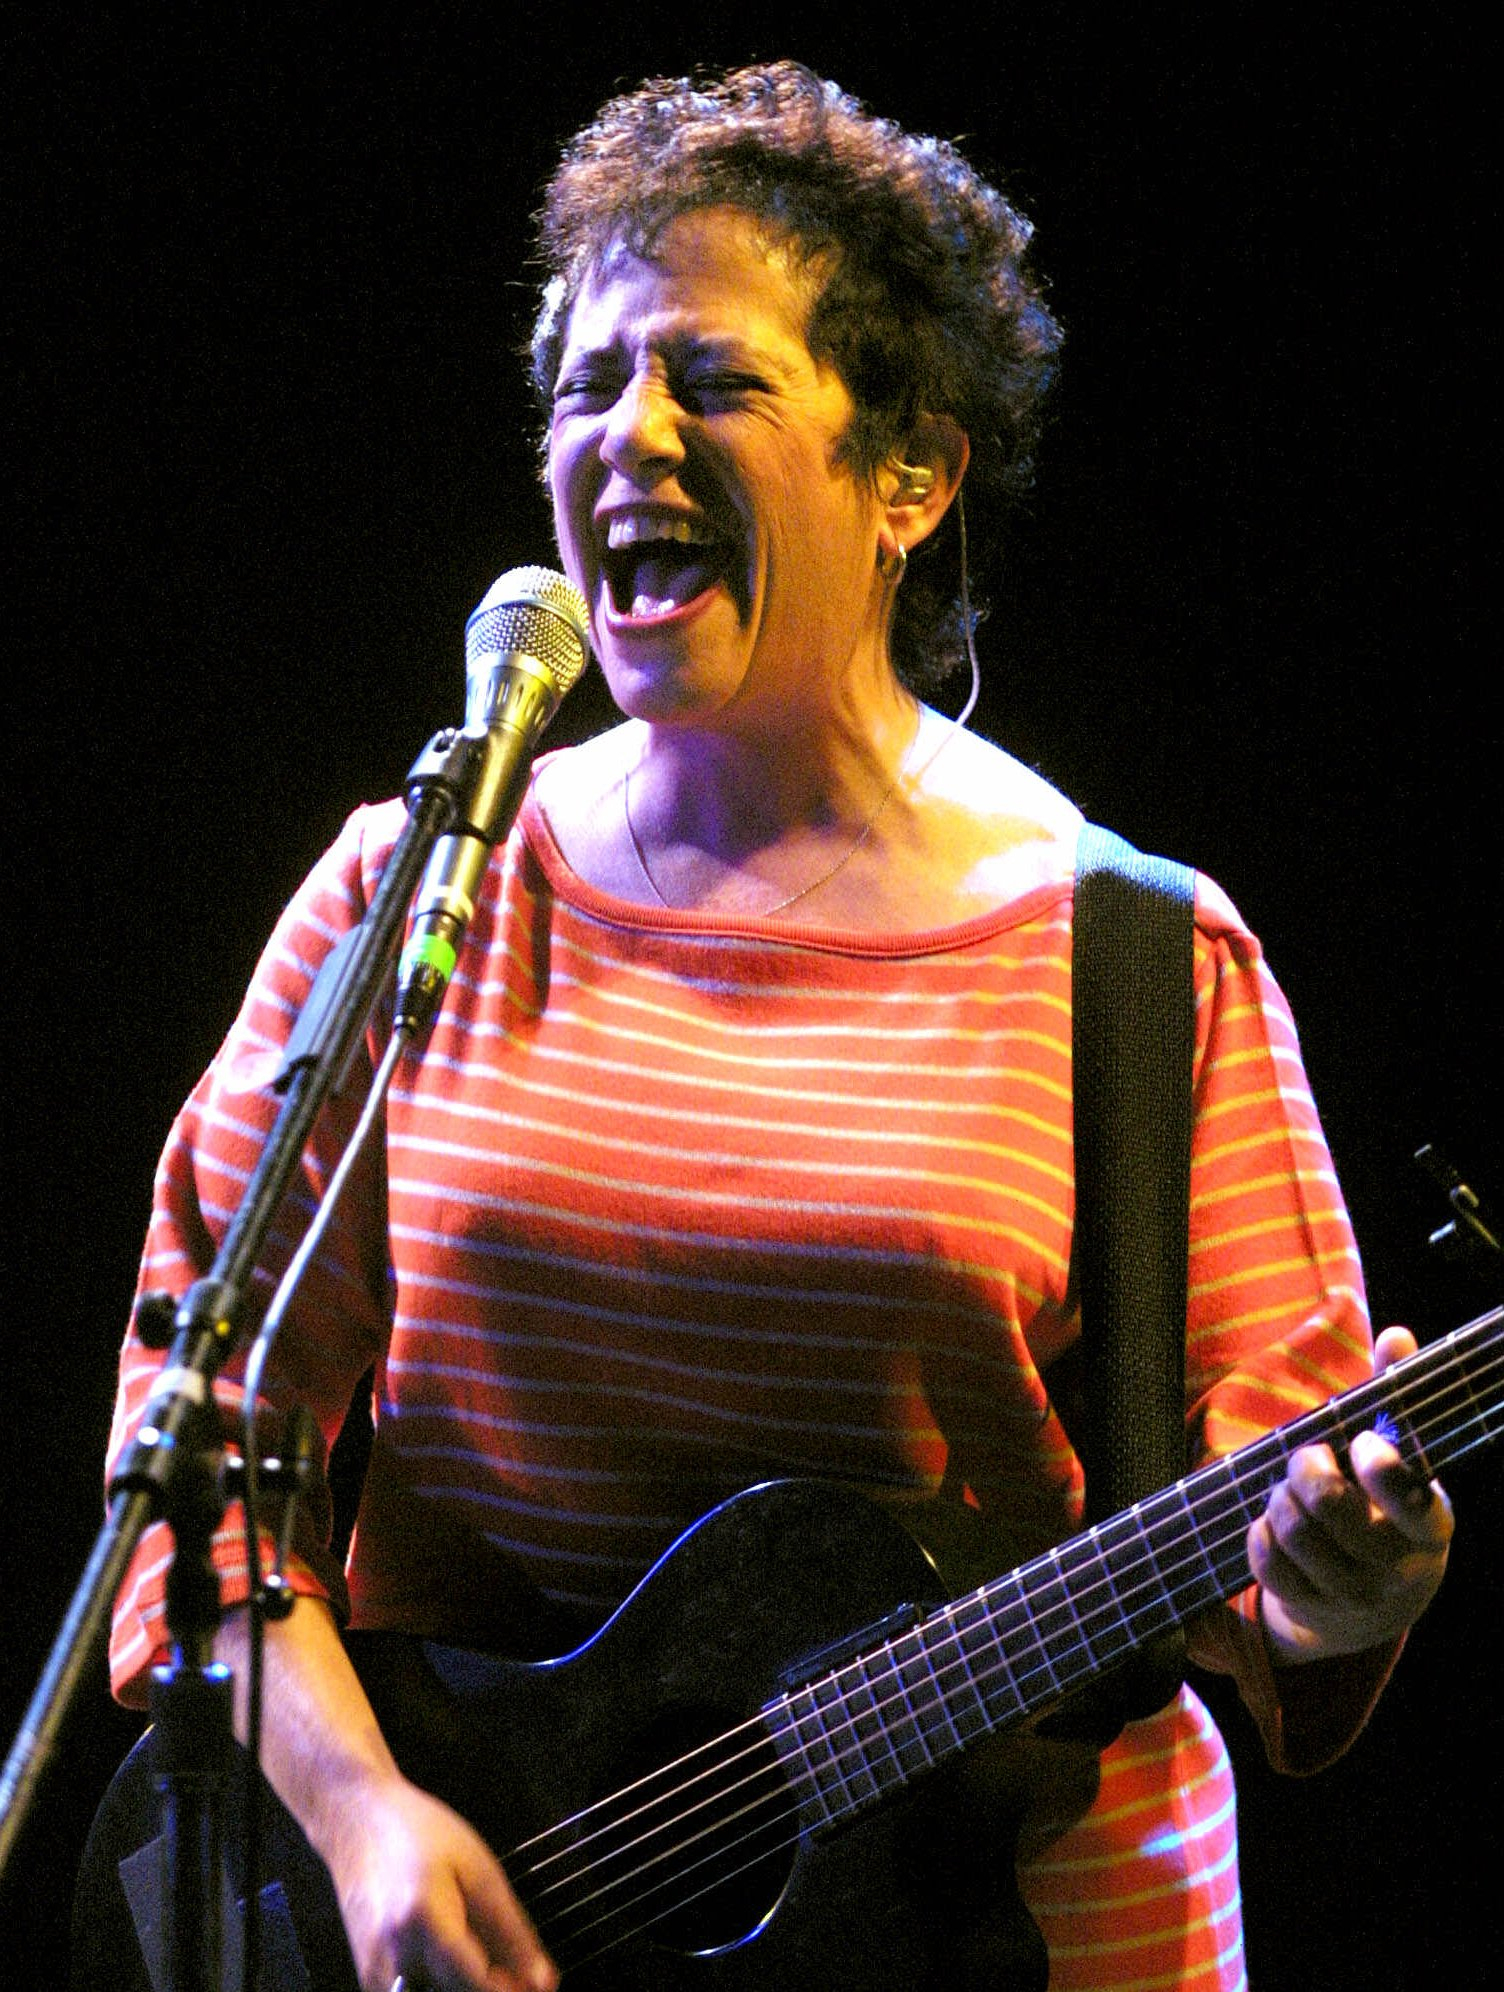 janis ian a song for all the seasons of your mind